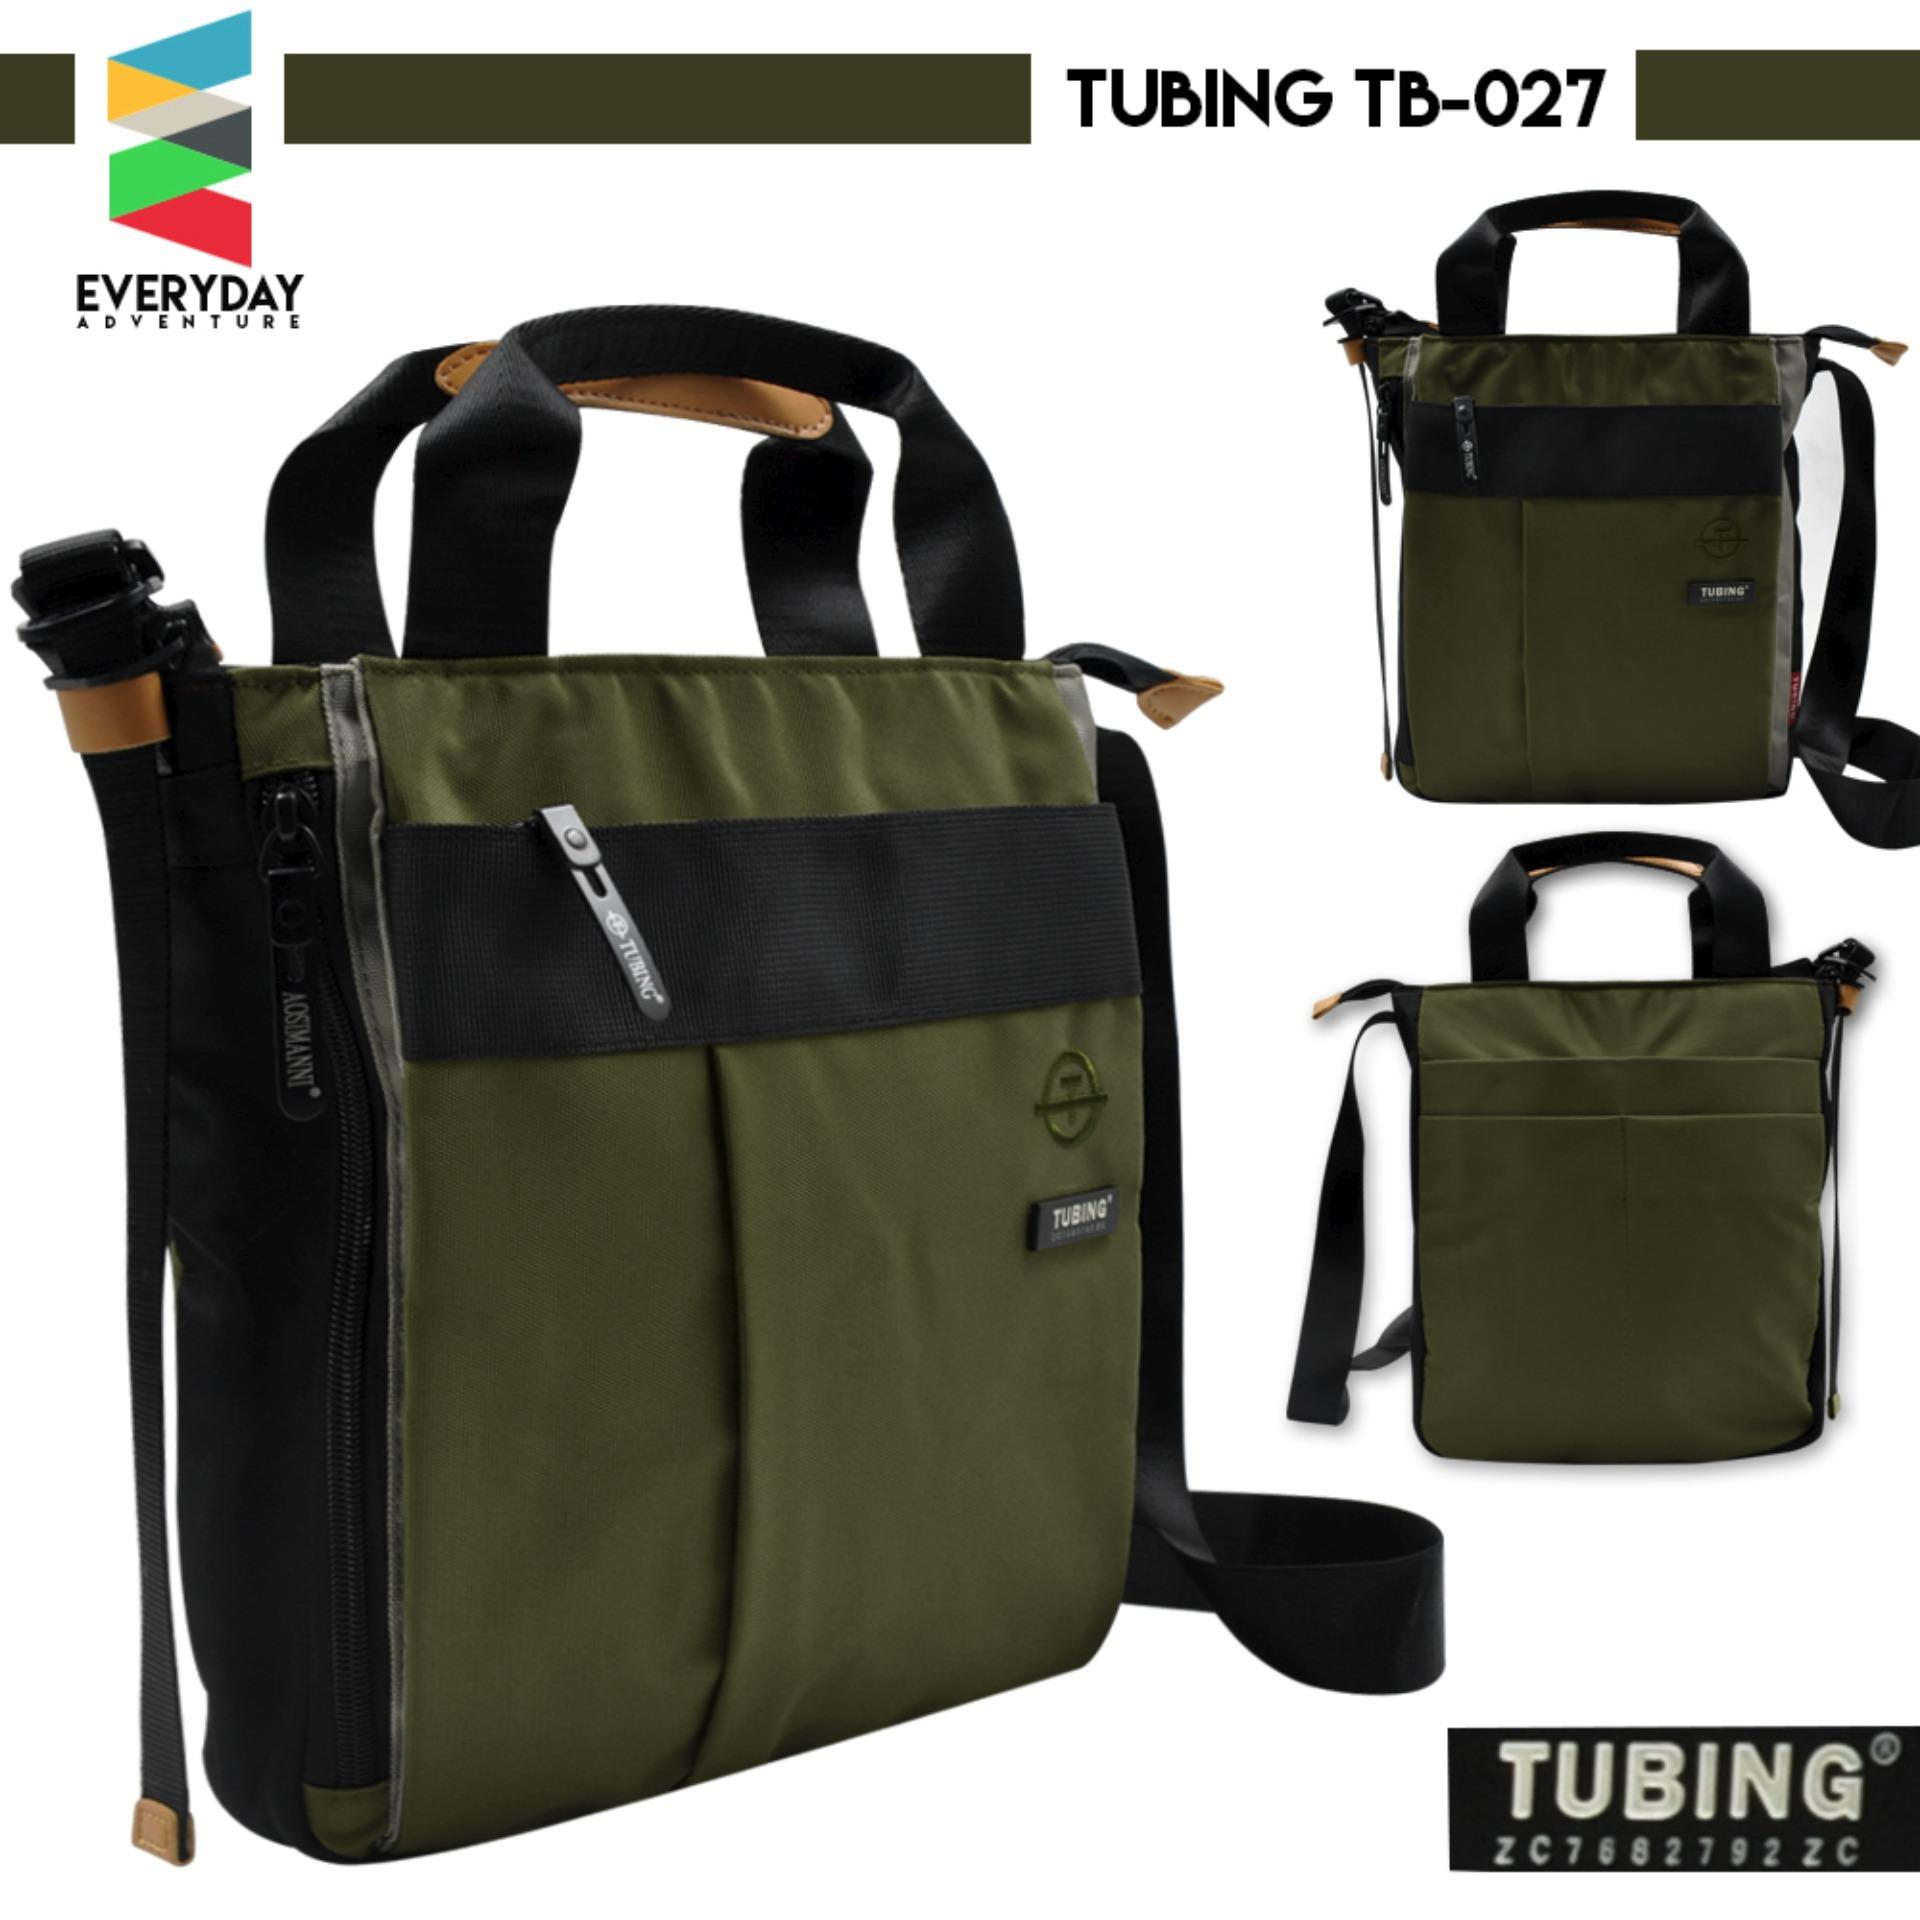 8f3357ec3d Everyday Deal TB-027 Tubing Nylon Men s Messenger Top Handle Sling Bag